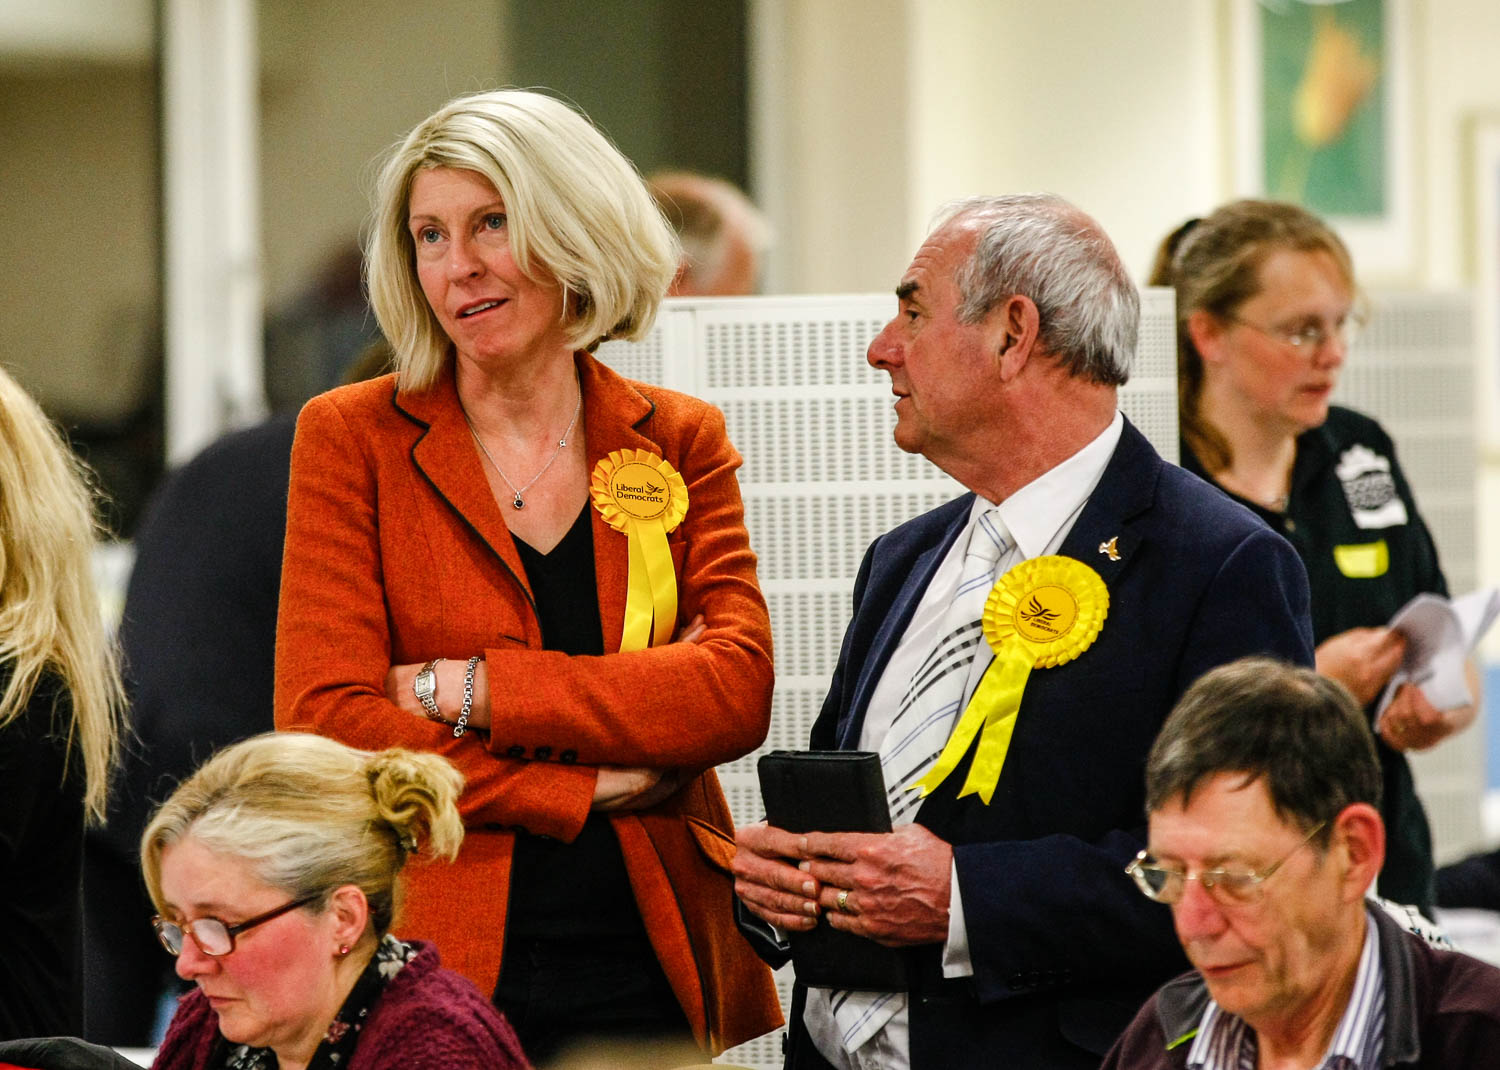 Liberal Democrate candidate Sarah Smith. 2015 General Election. Constituency Results, Dover. (c) MATT BRISTOW | StockPix.eu